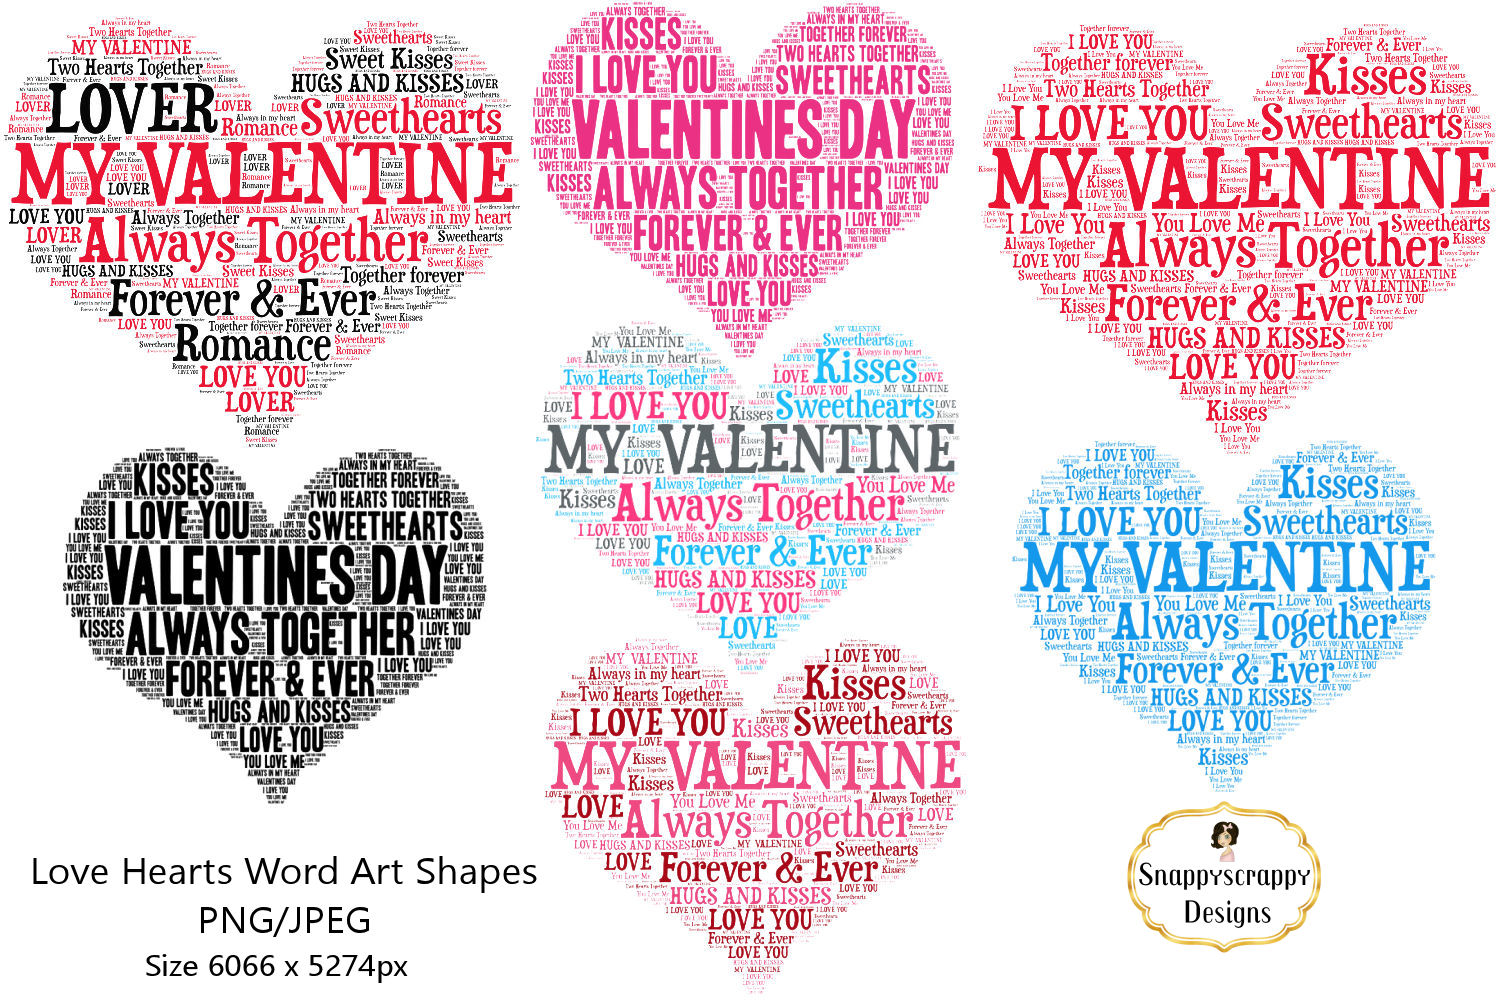 Valentine Love Hearts - Wordart Shapes example image 2